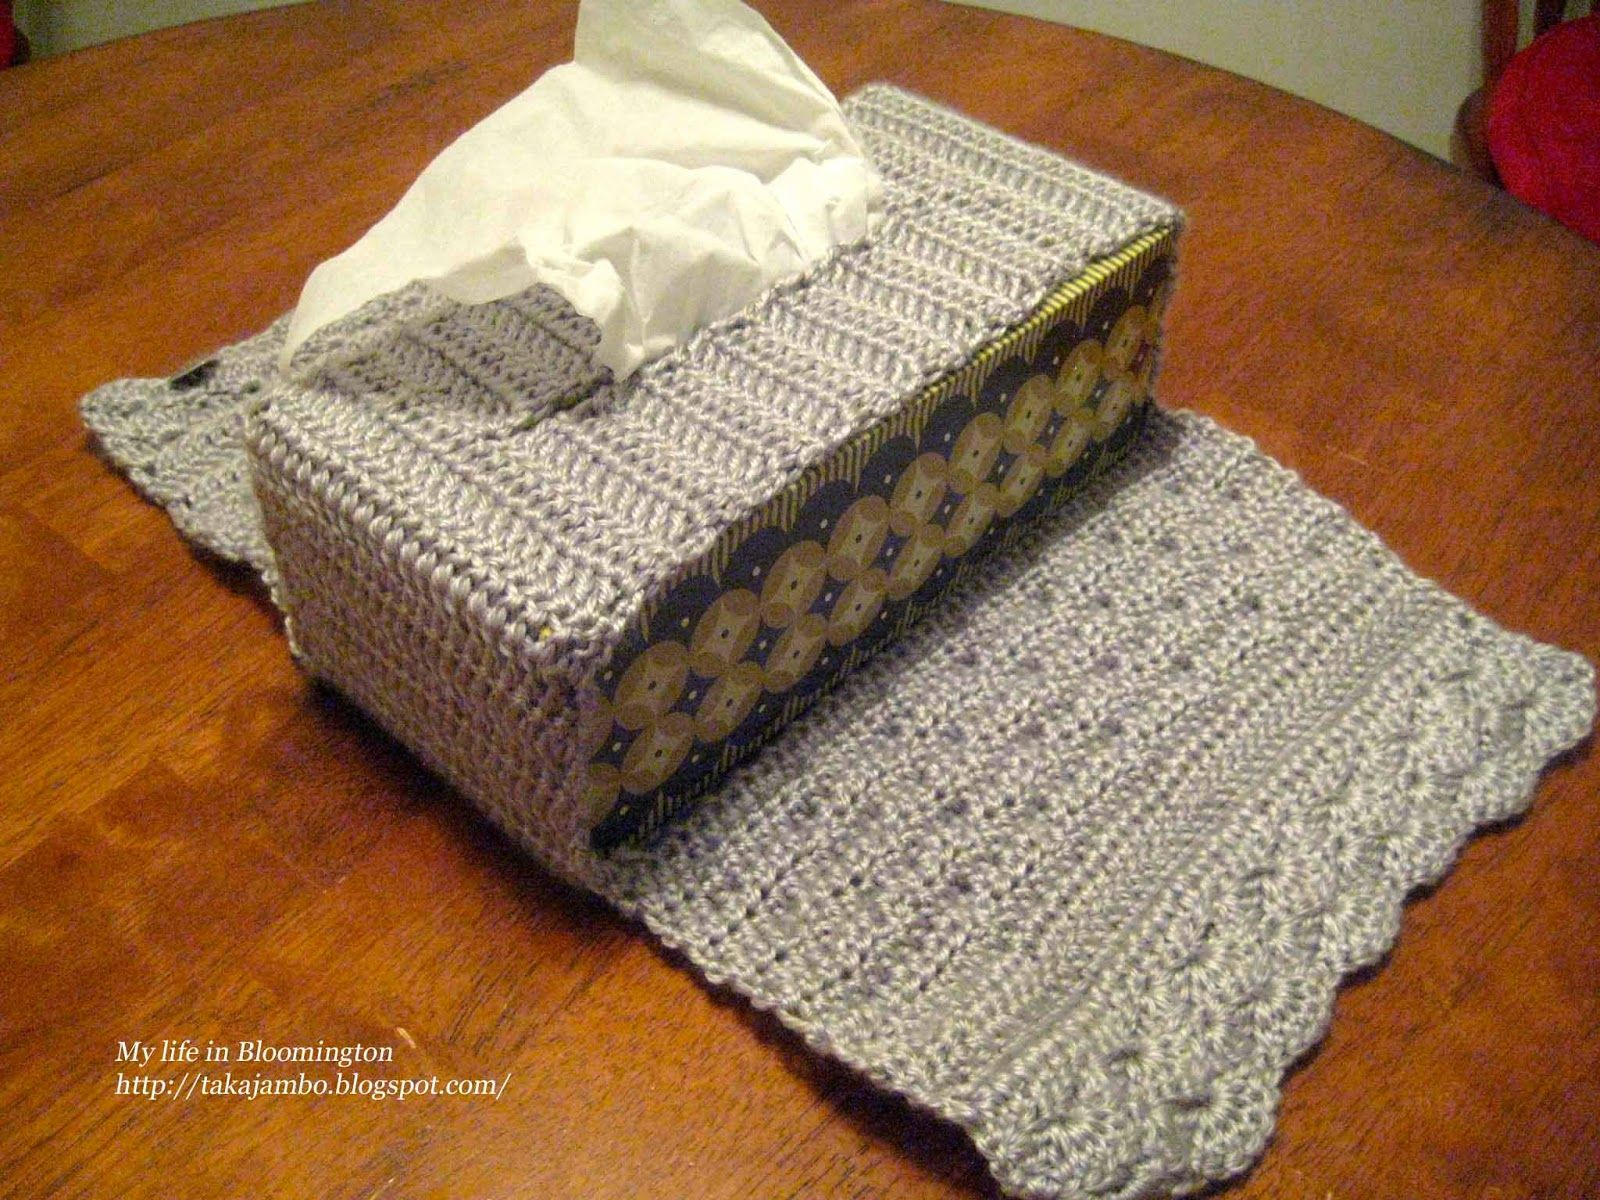 IMG_1040.jpg (1600×1200) | Servilletero | Pinterest | Tissue boxes ...